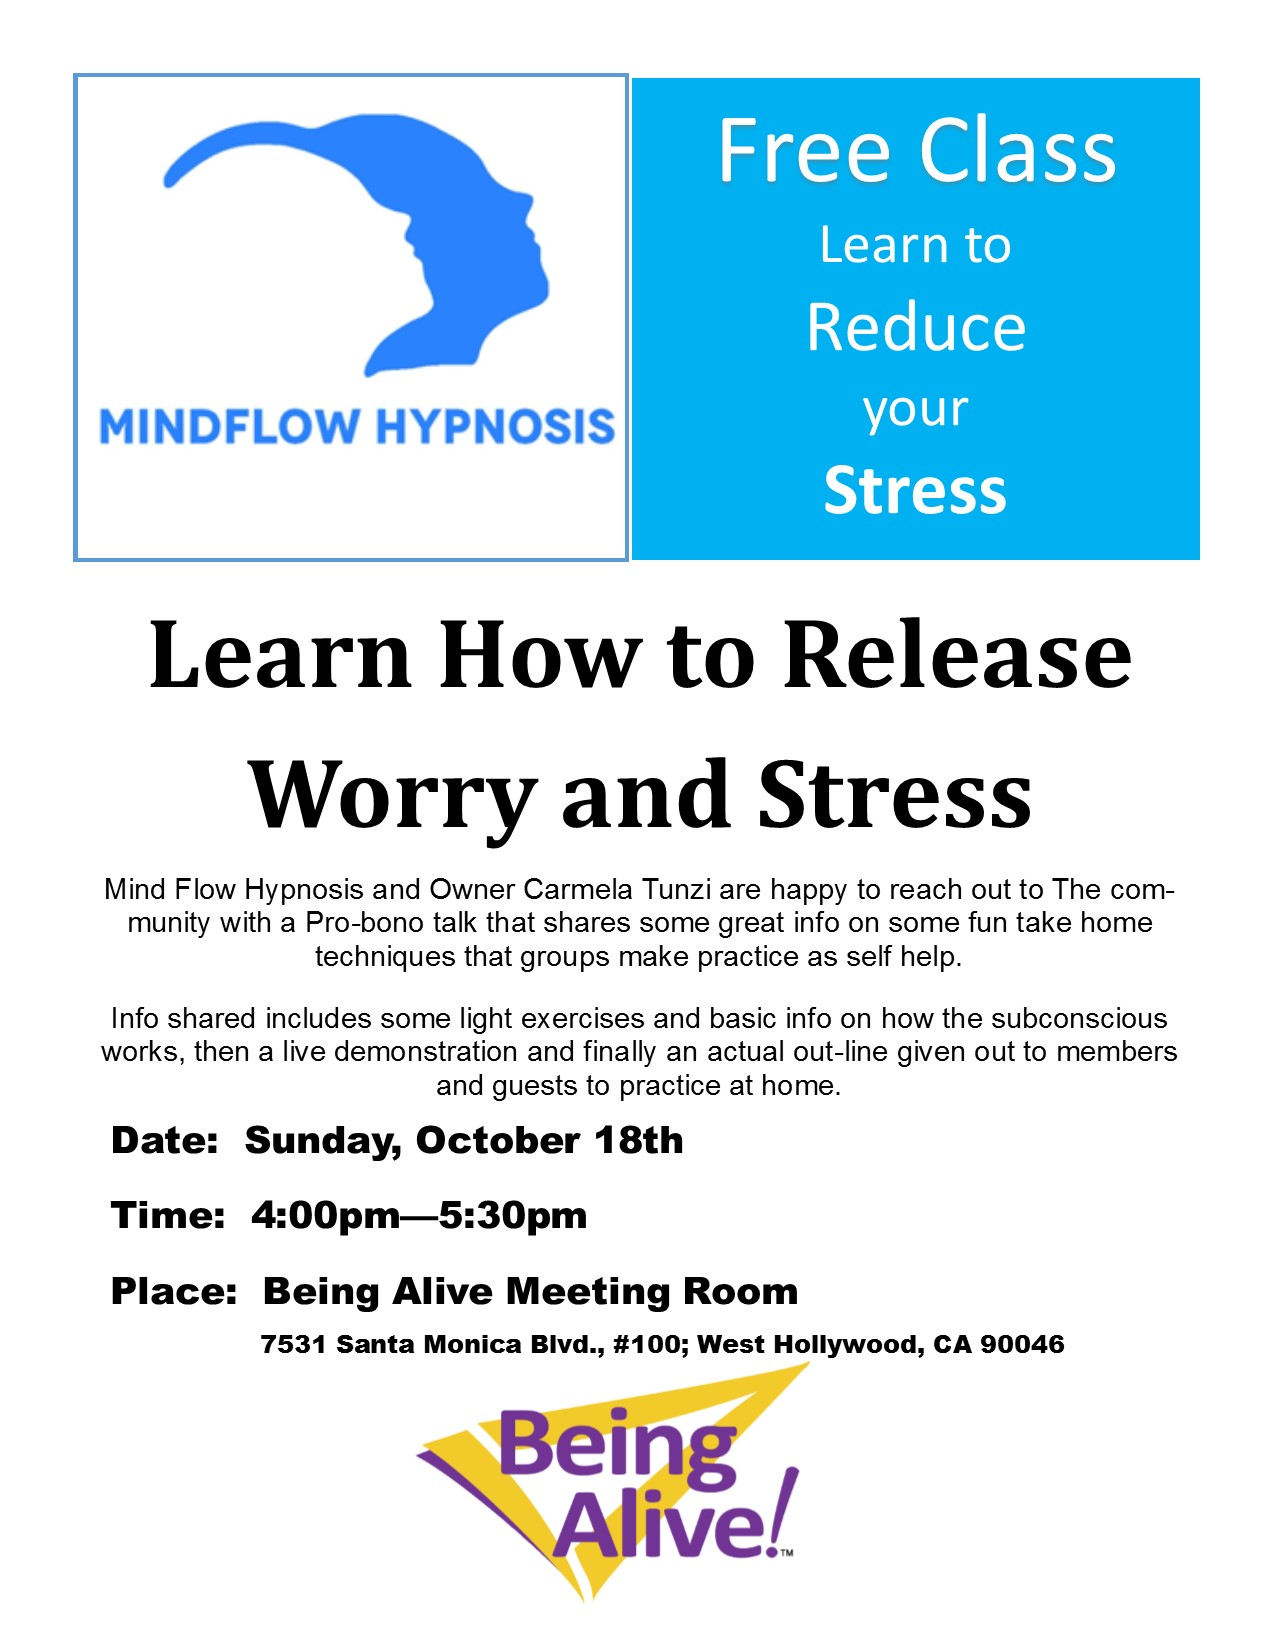 Mindflow Hypnosis